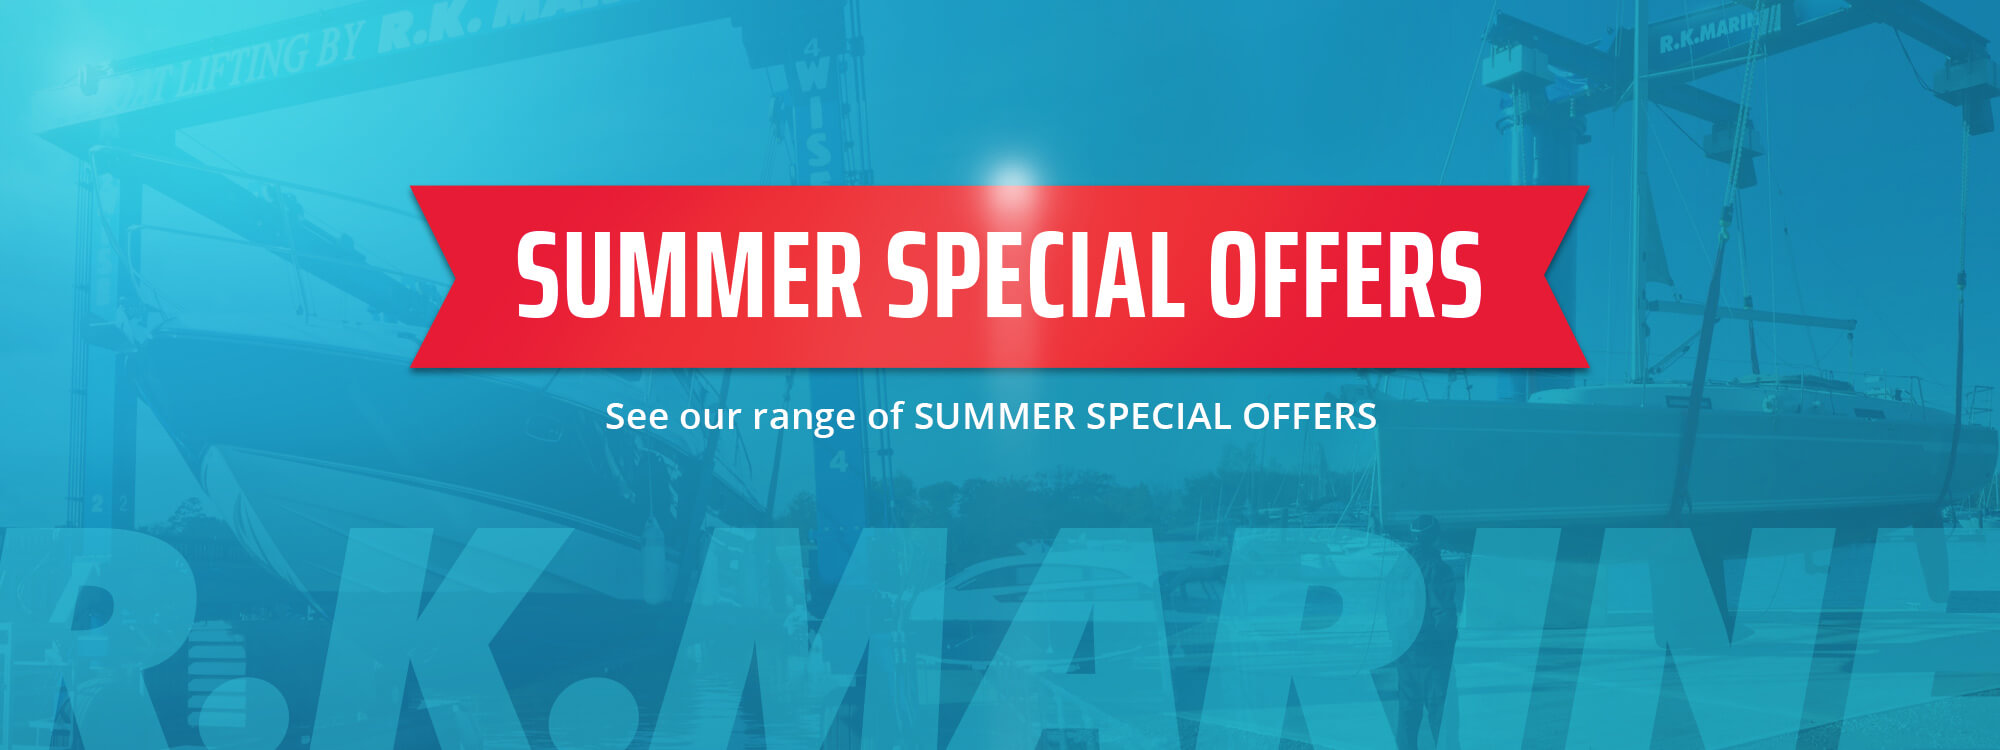 Summer Special Offers from RK Marine